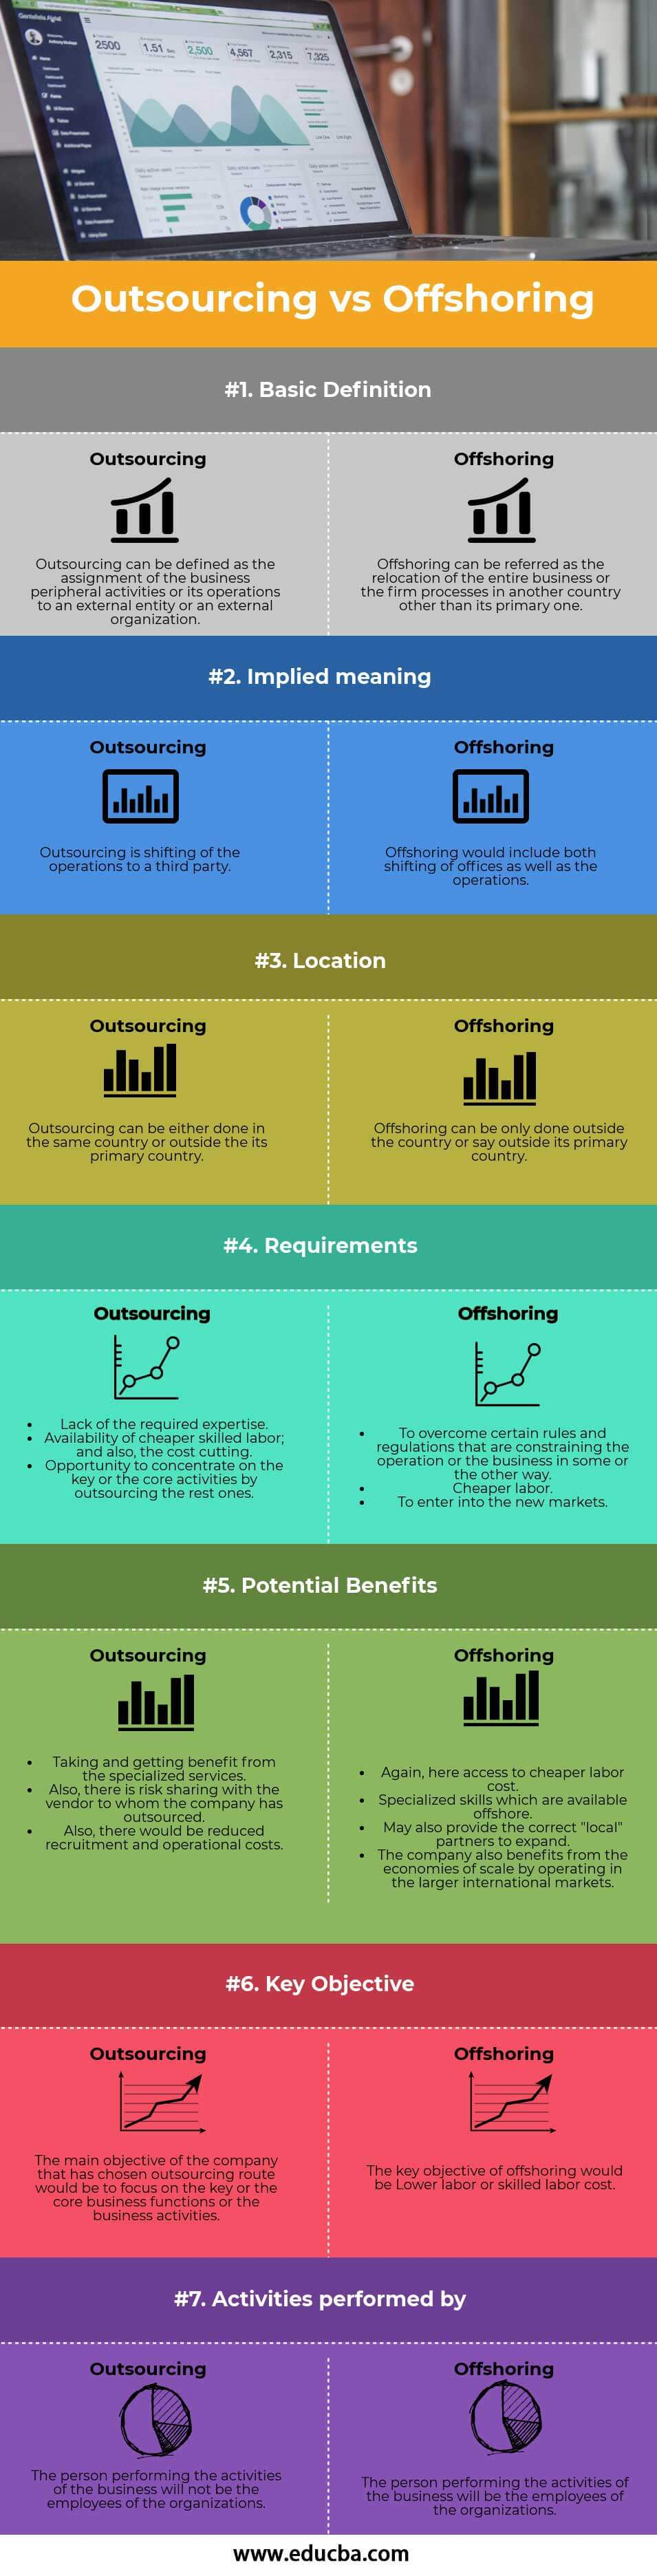 Outsourcing vs Offshoring Infography